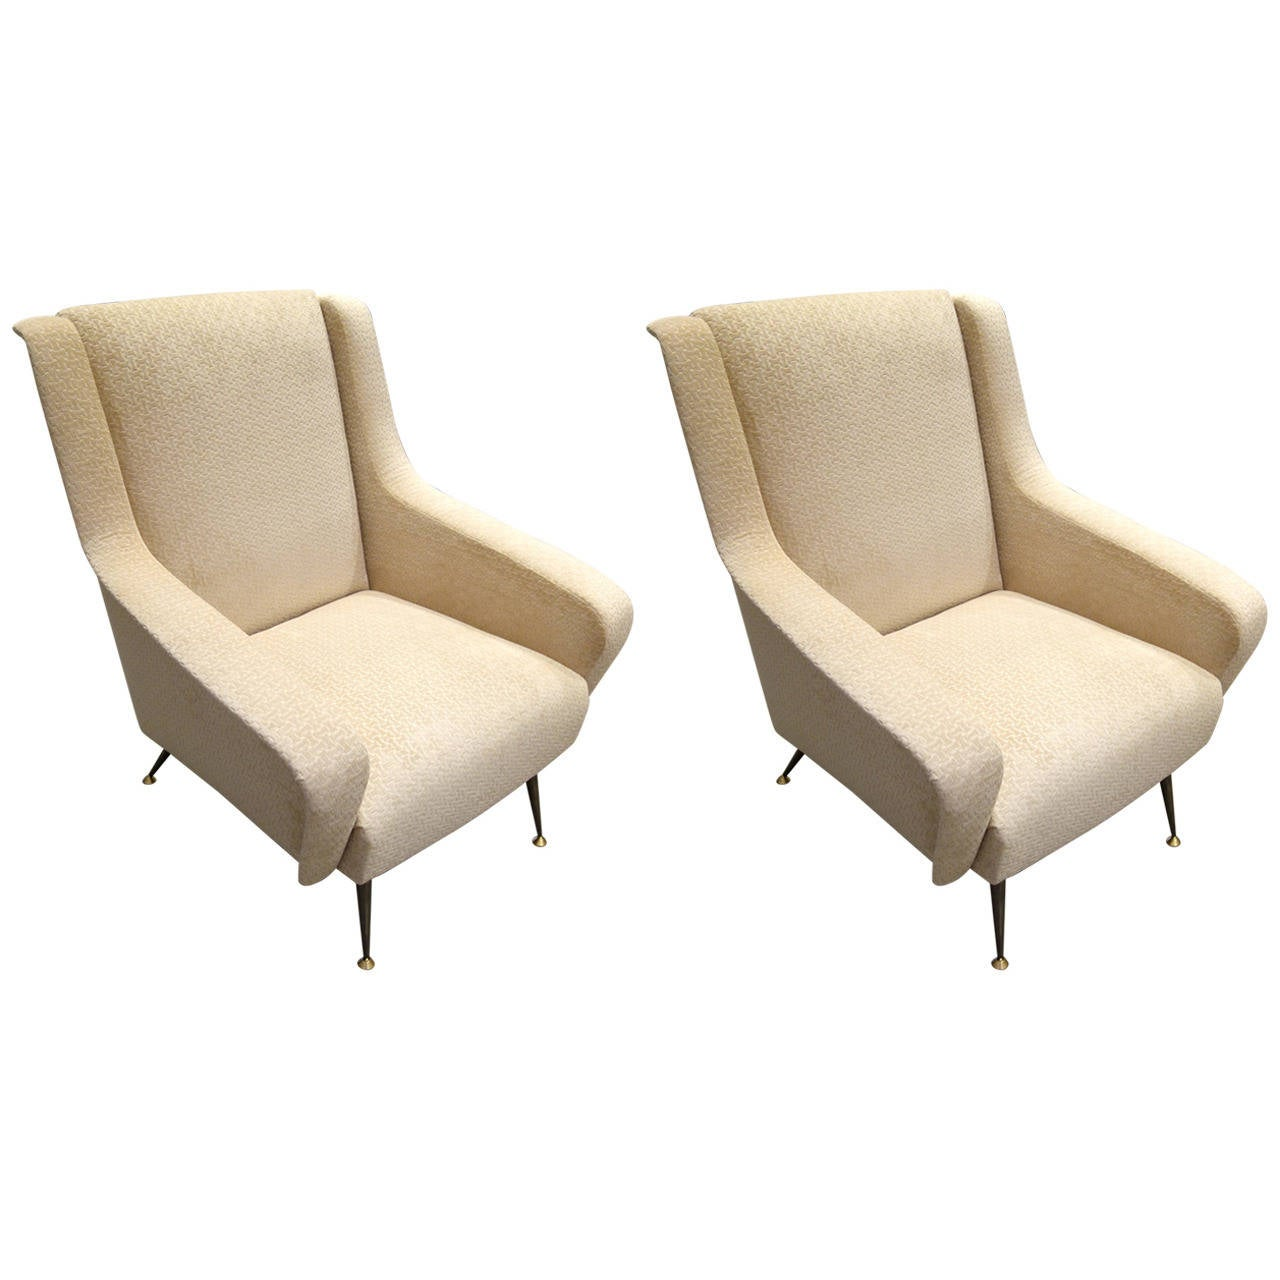 arm chairs for sale gaming chair reviews canada pair of mid century modern italian sculptural lounge